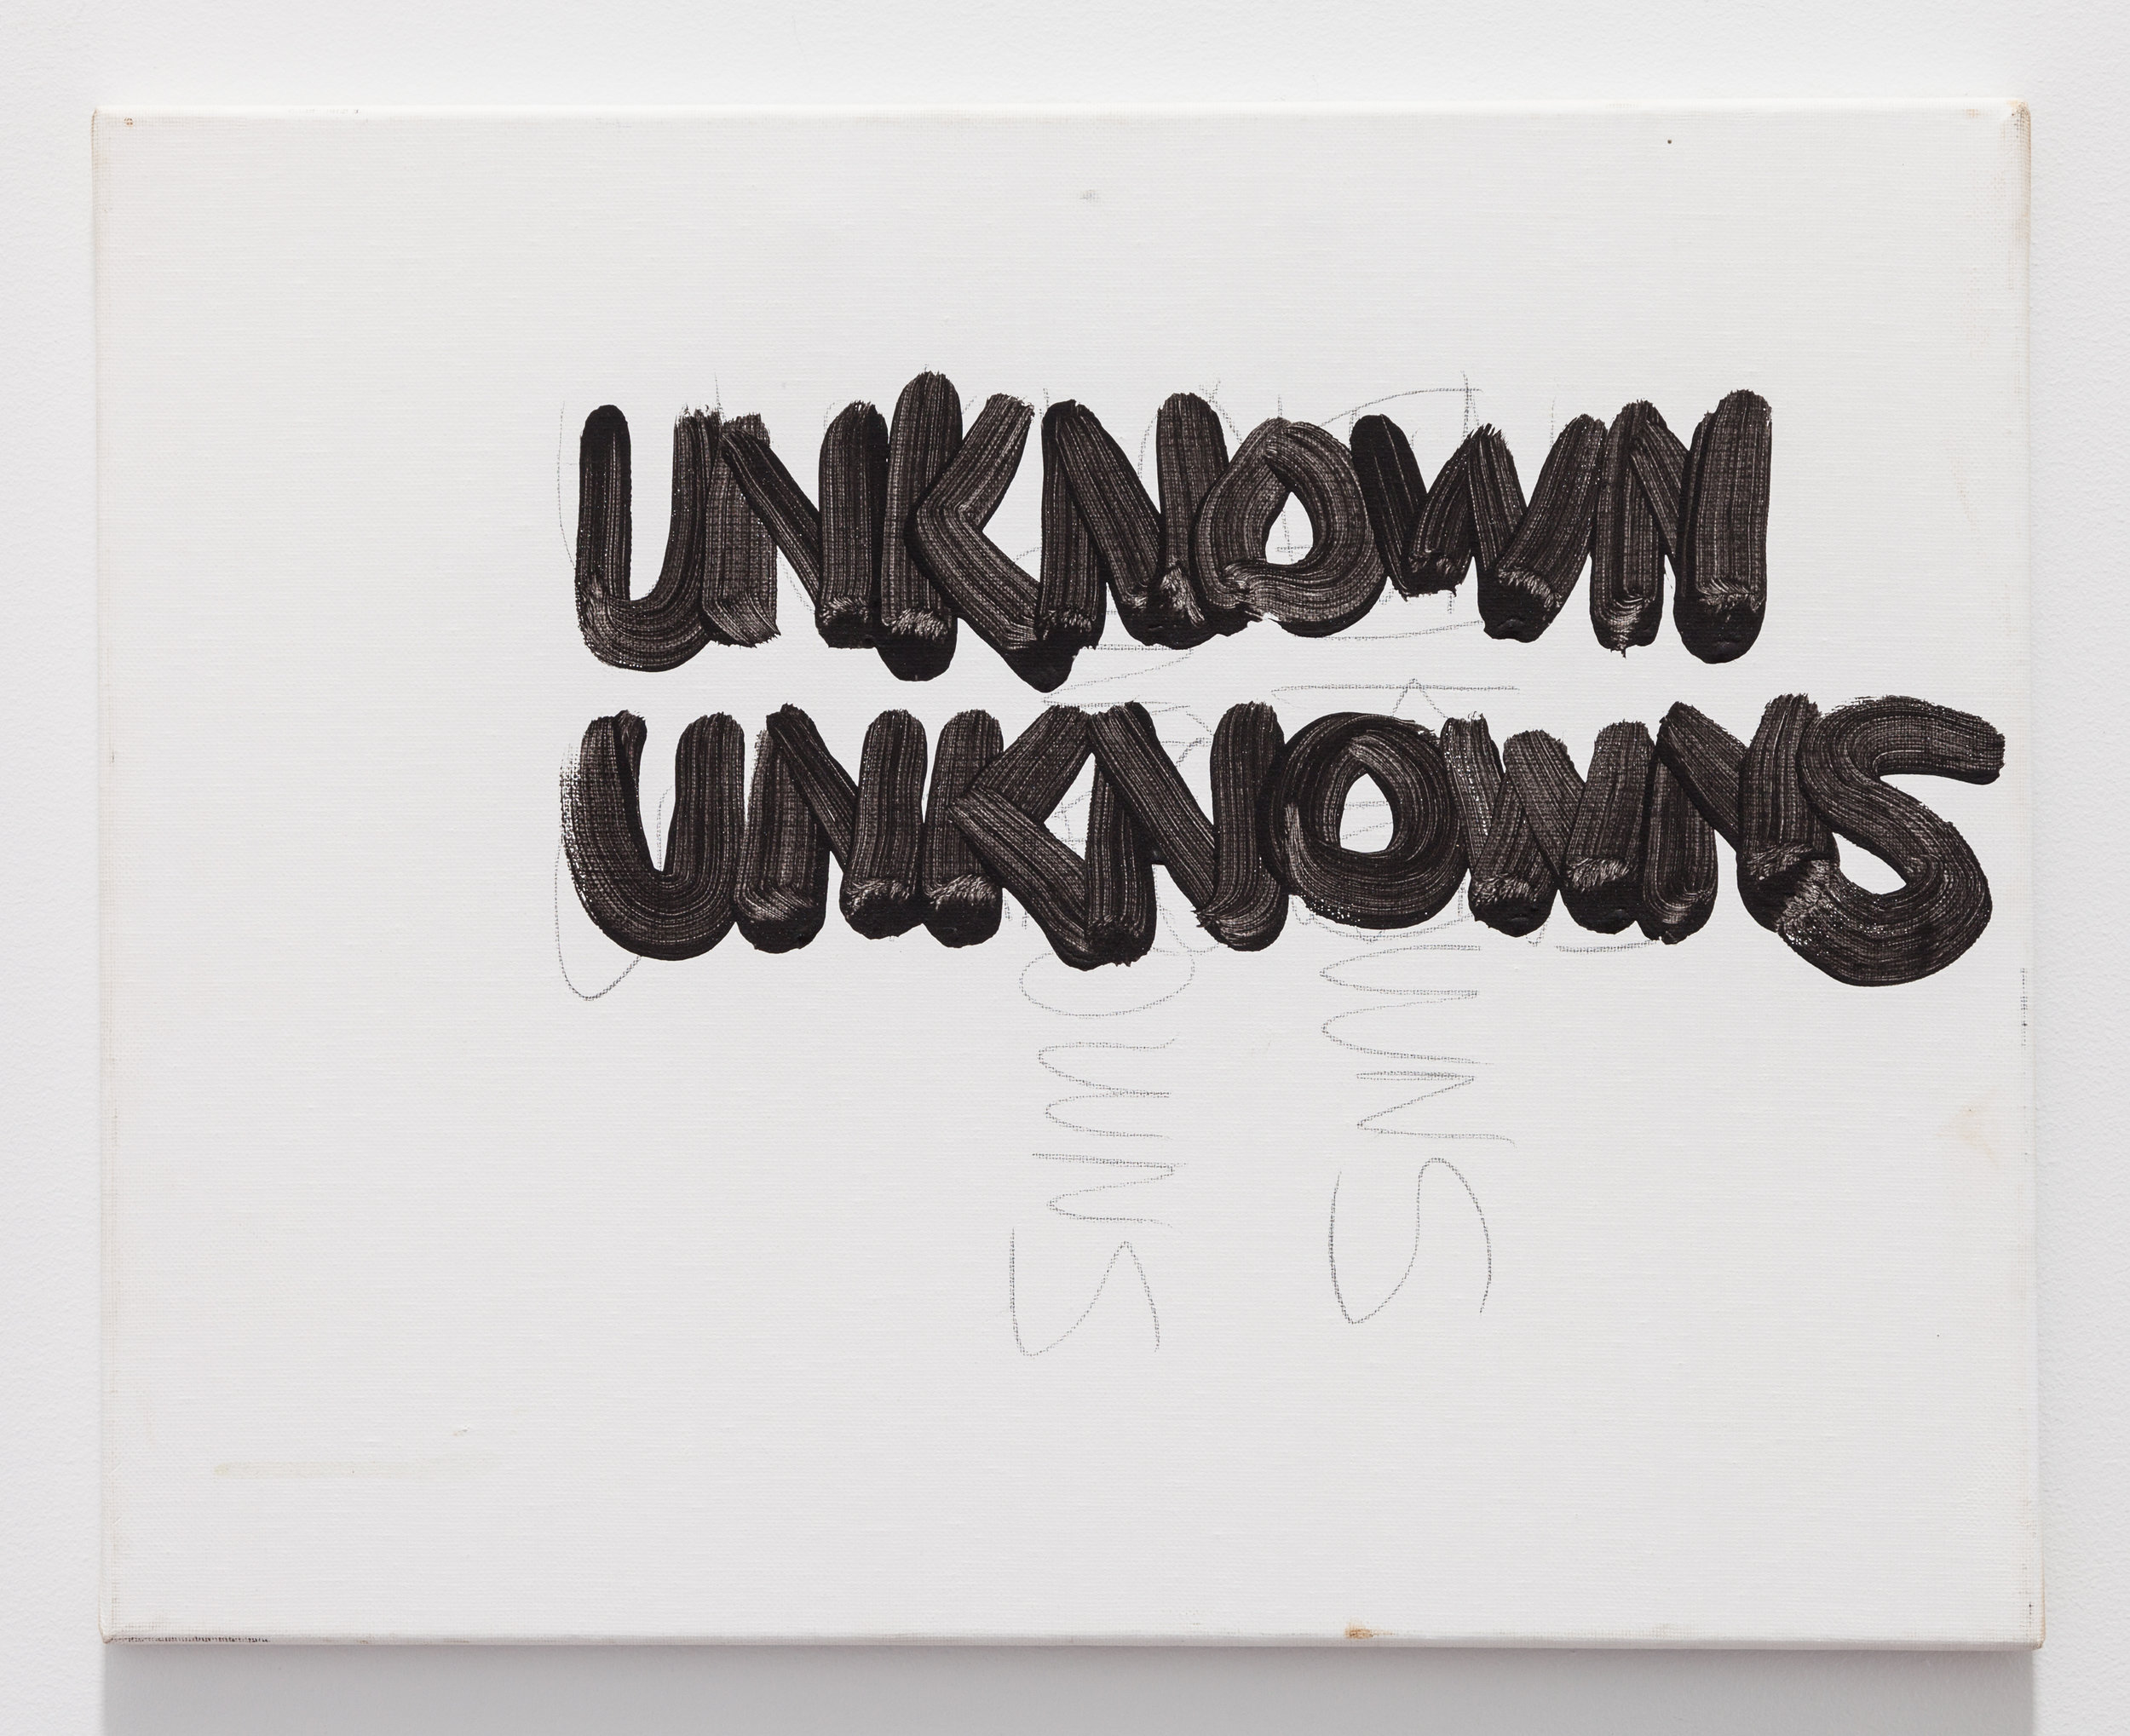 Gene Beery,  Unkowns Unkowns , 2006, acrylic on canvas, 20 x 16 in